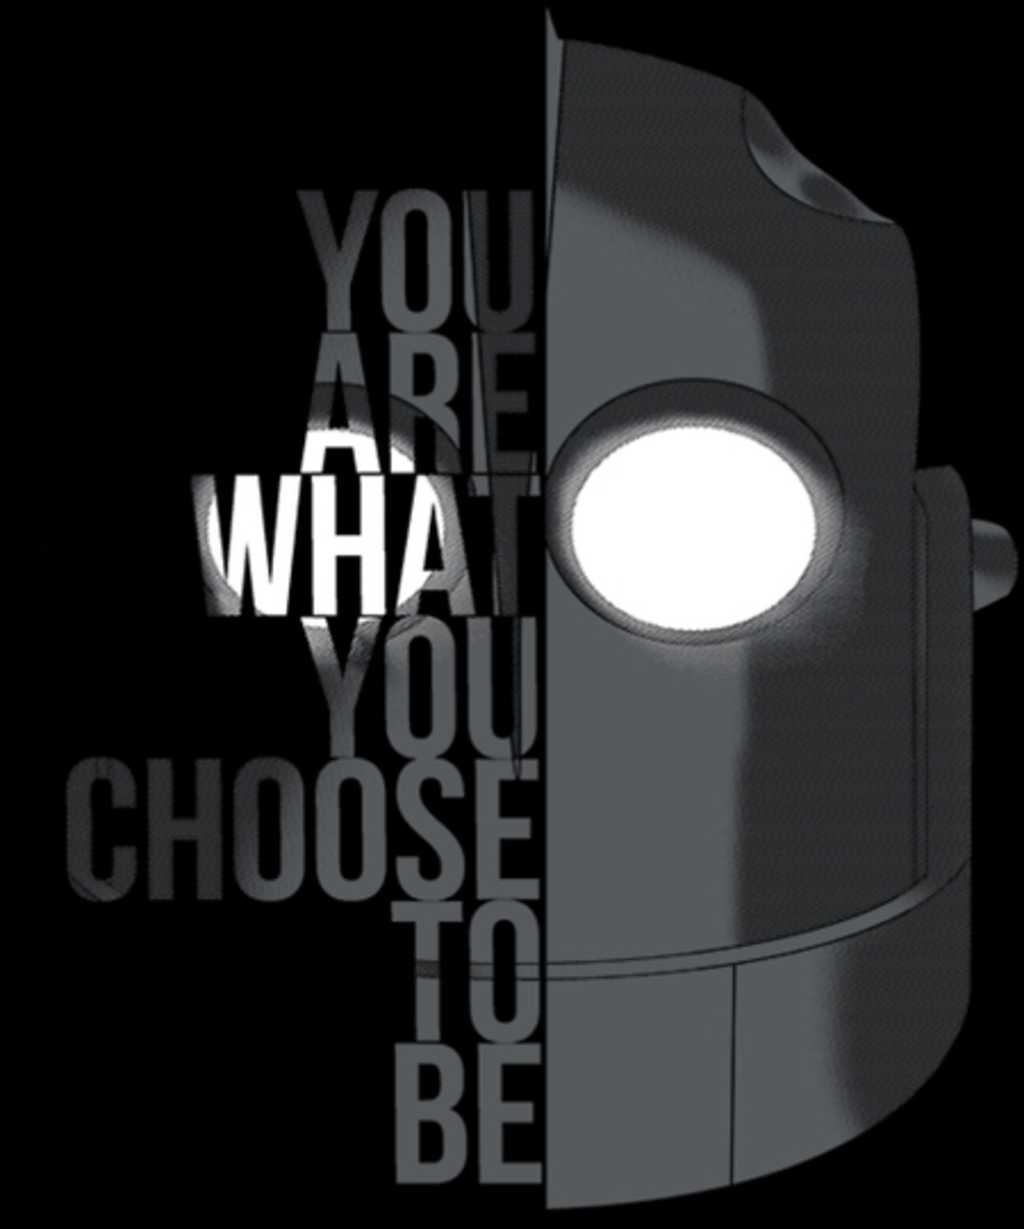 Qwertee: You are what you choose to be...